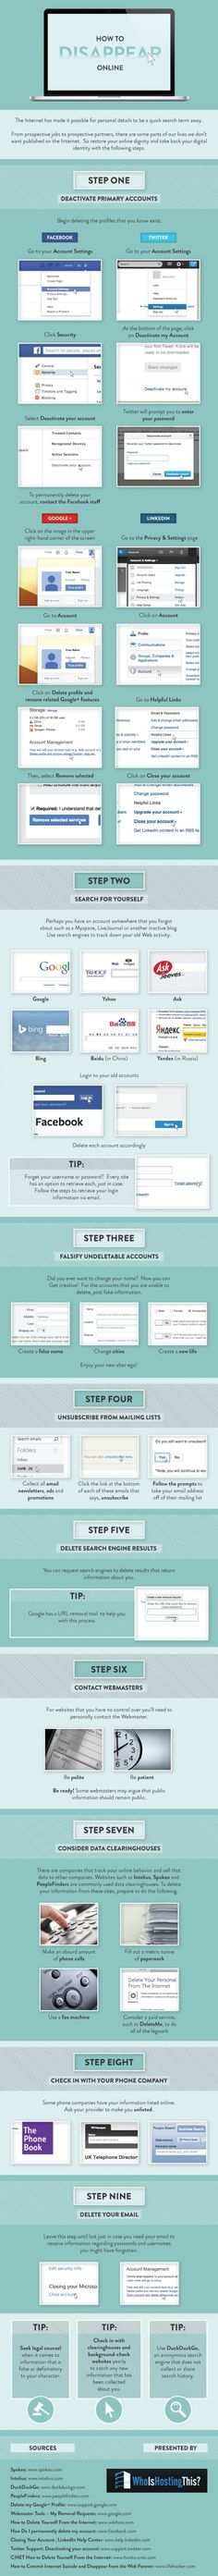 How to Disappear Online Infographic, might need this later on